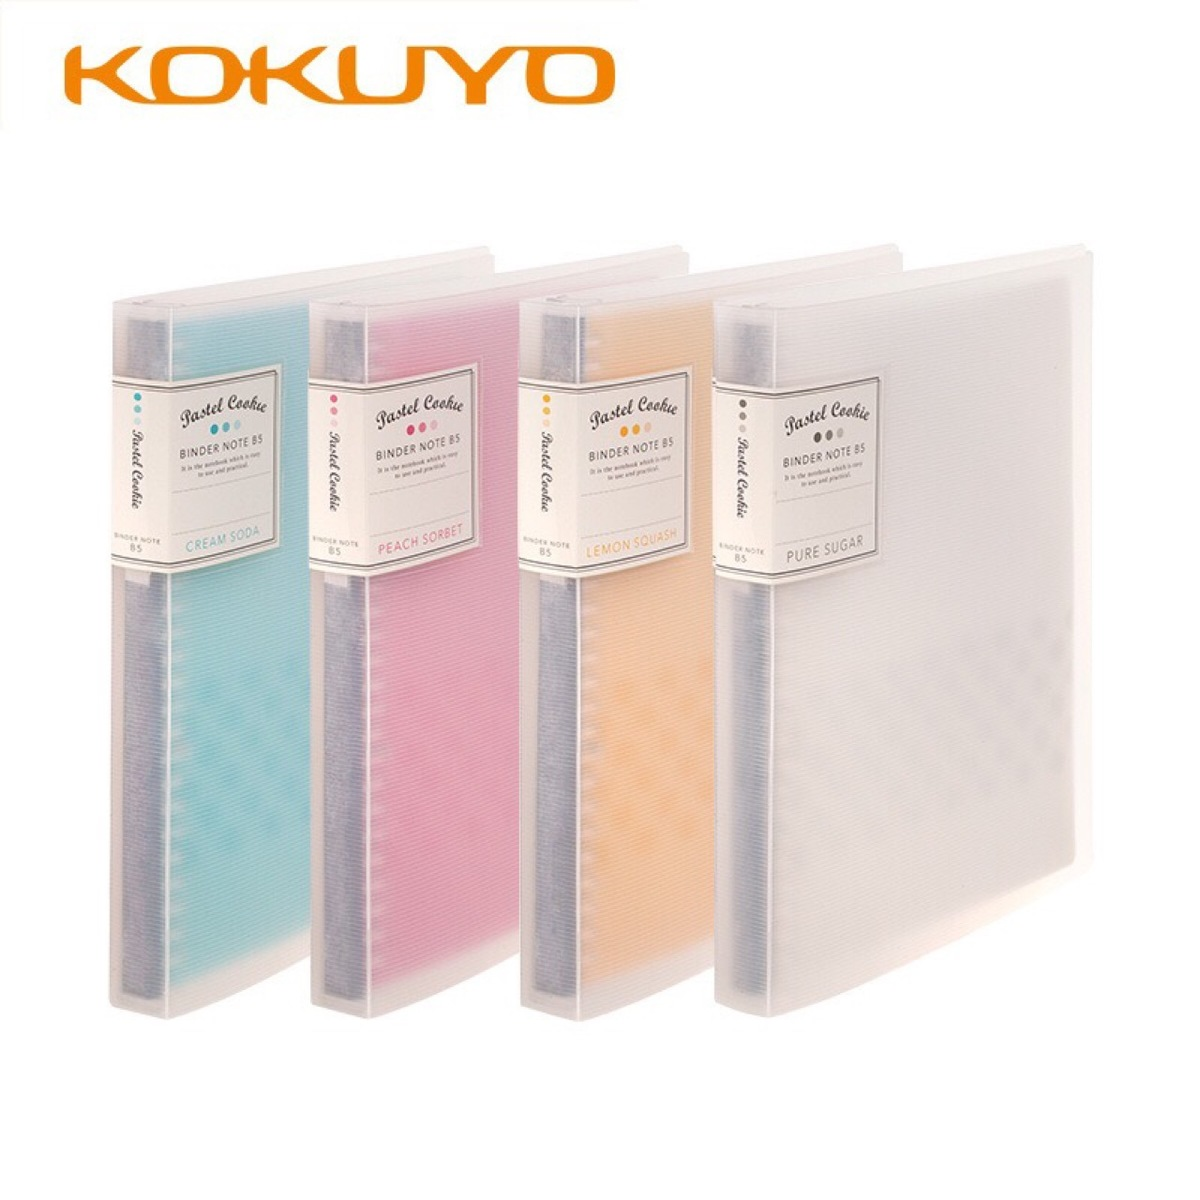 KOKUYO A5 B5 Removable Loose Leaf Notebook Refill Spiral Binder Planner Inner Page Inside Paper Dairy Weekly Monthly Plan Line 2018 yiwi a5 a6 line flower inner page for binder notebook matching filofax refill inner paper 40 sheets page 3